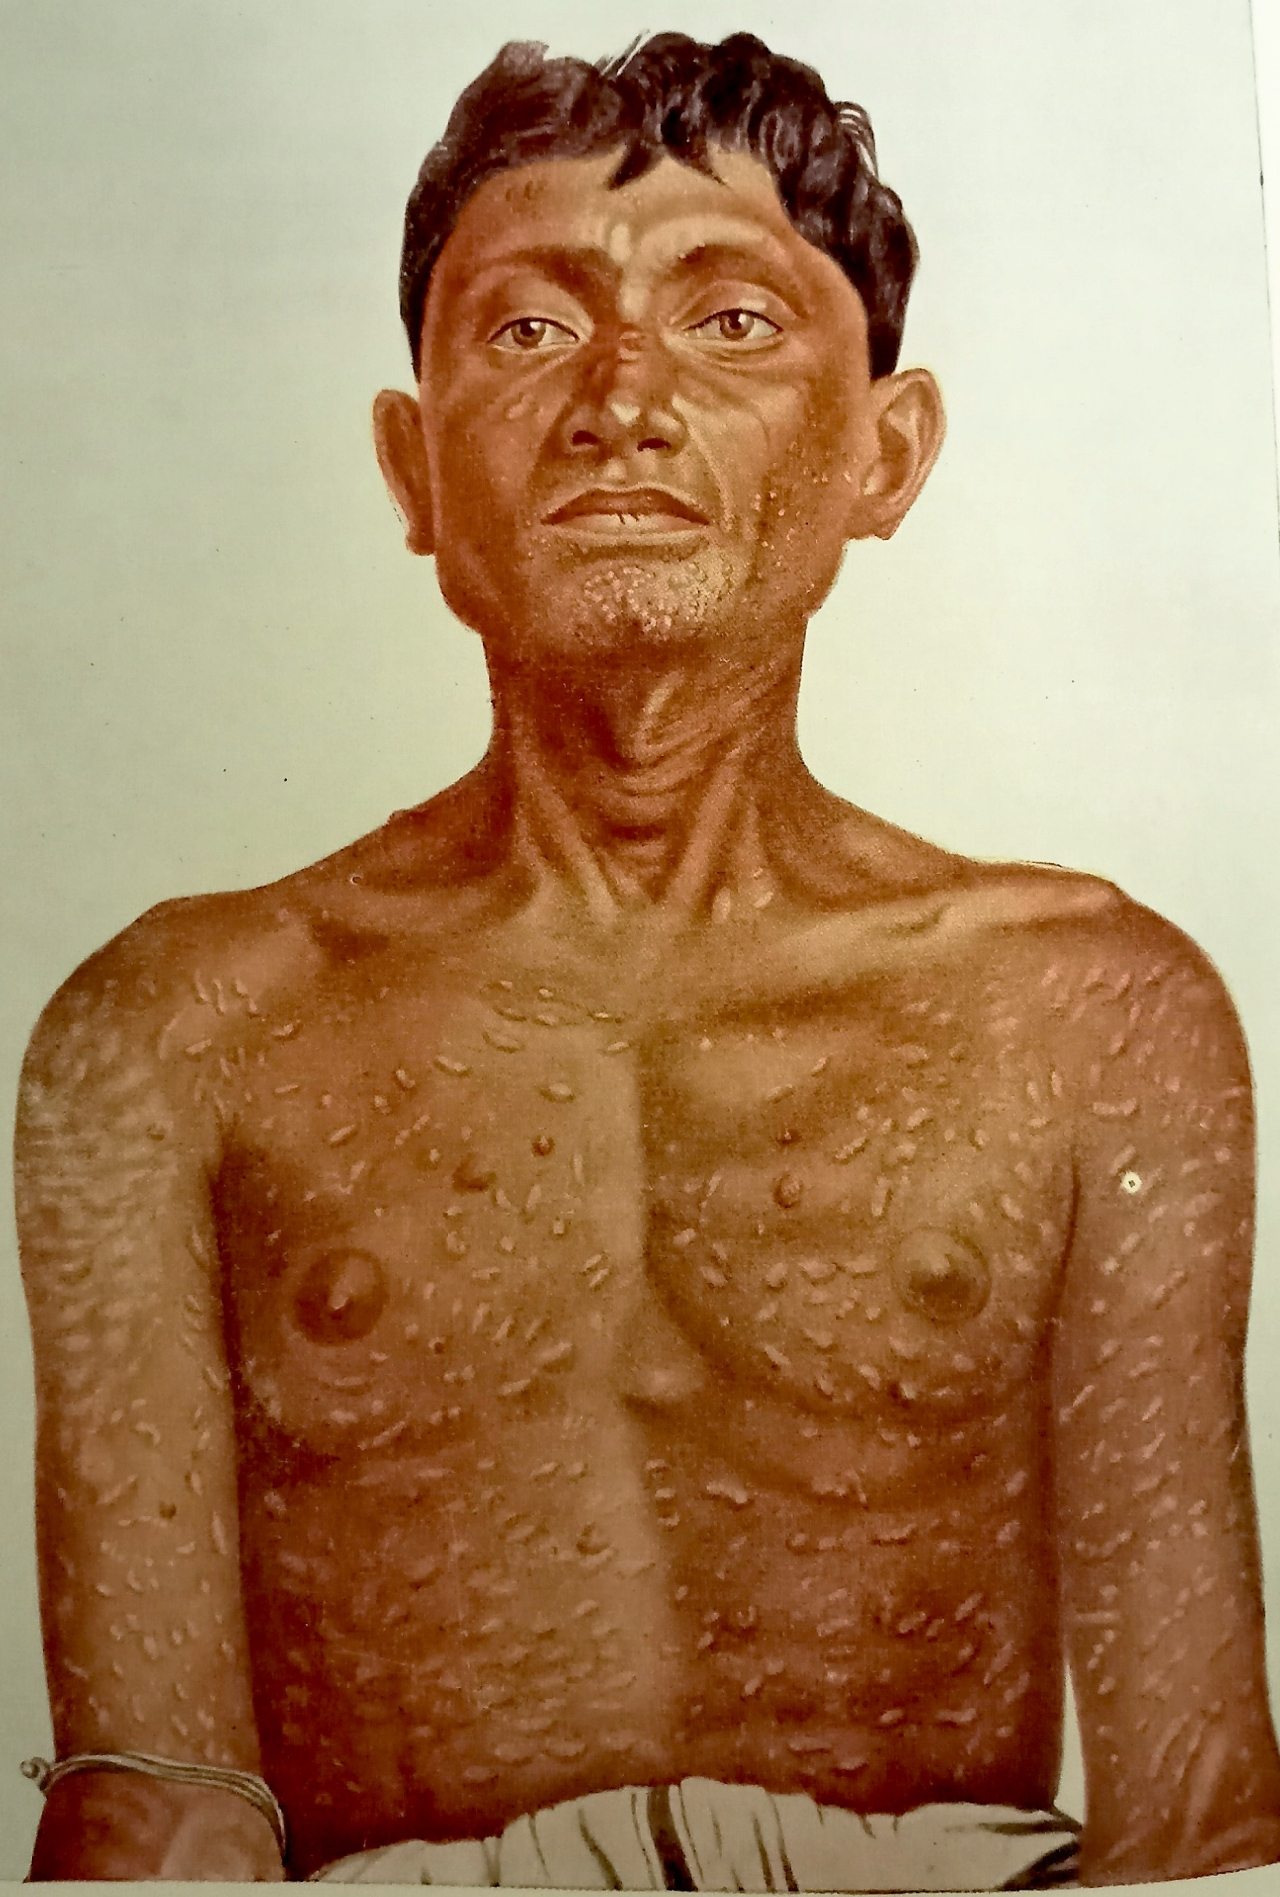 Figure 5. Brahmachari's Dermal Leishmaniasis (From 'Gleanings From My Researches', by Upendranath Brahmachari, Calcutta University Press, 1940)